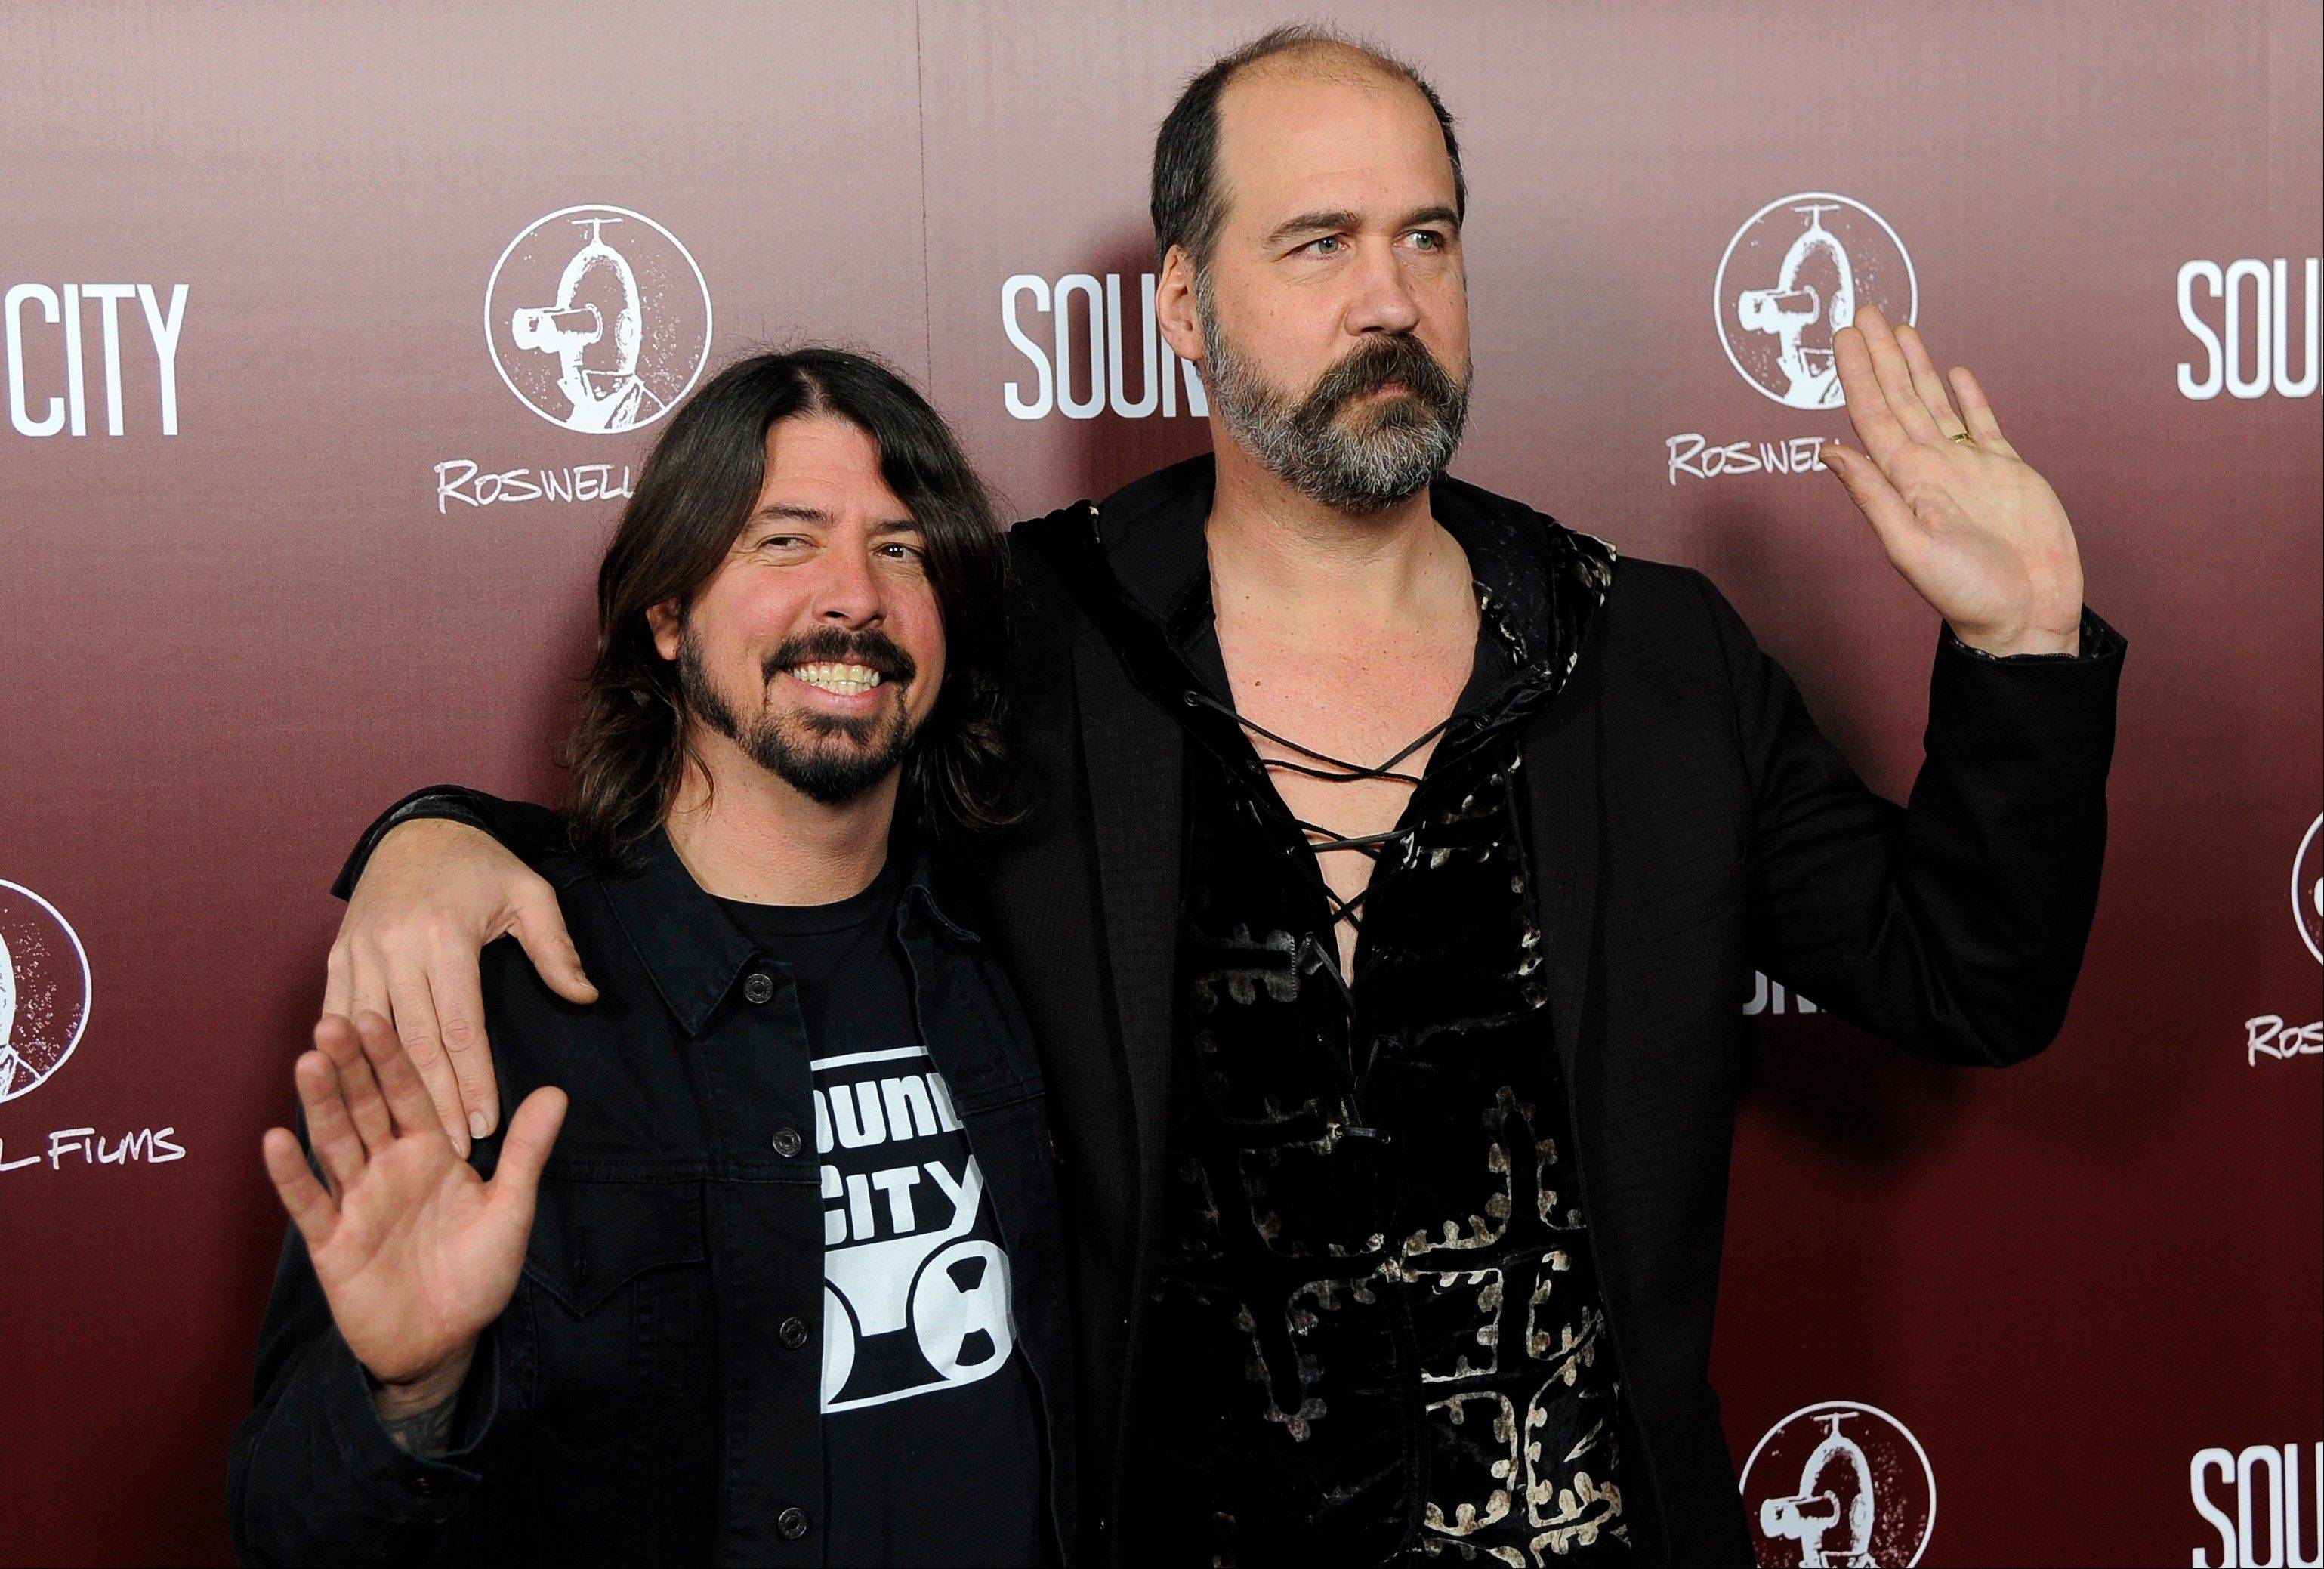 Dave Grohl, left, poses with Nirvana bandmate Krist Novoselic at the premiere of the documentary film �Sound City,� in Los Angeles. Nirvana will be inducted into the 2014 Rock and Roll Hall of Fame on April 10 at the Barclays Center in New York.